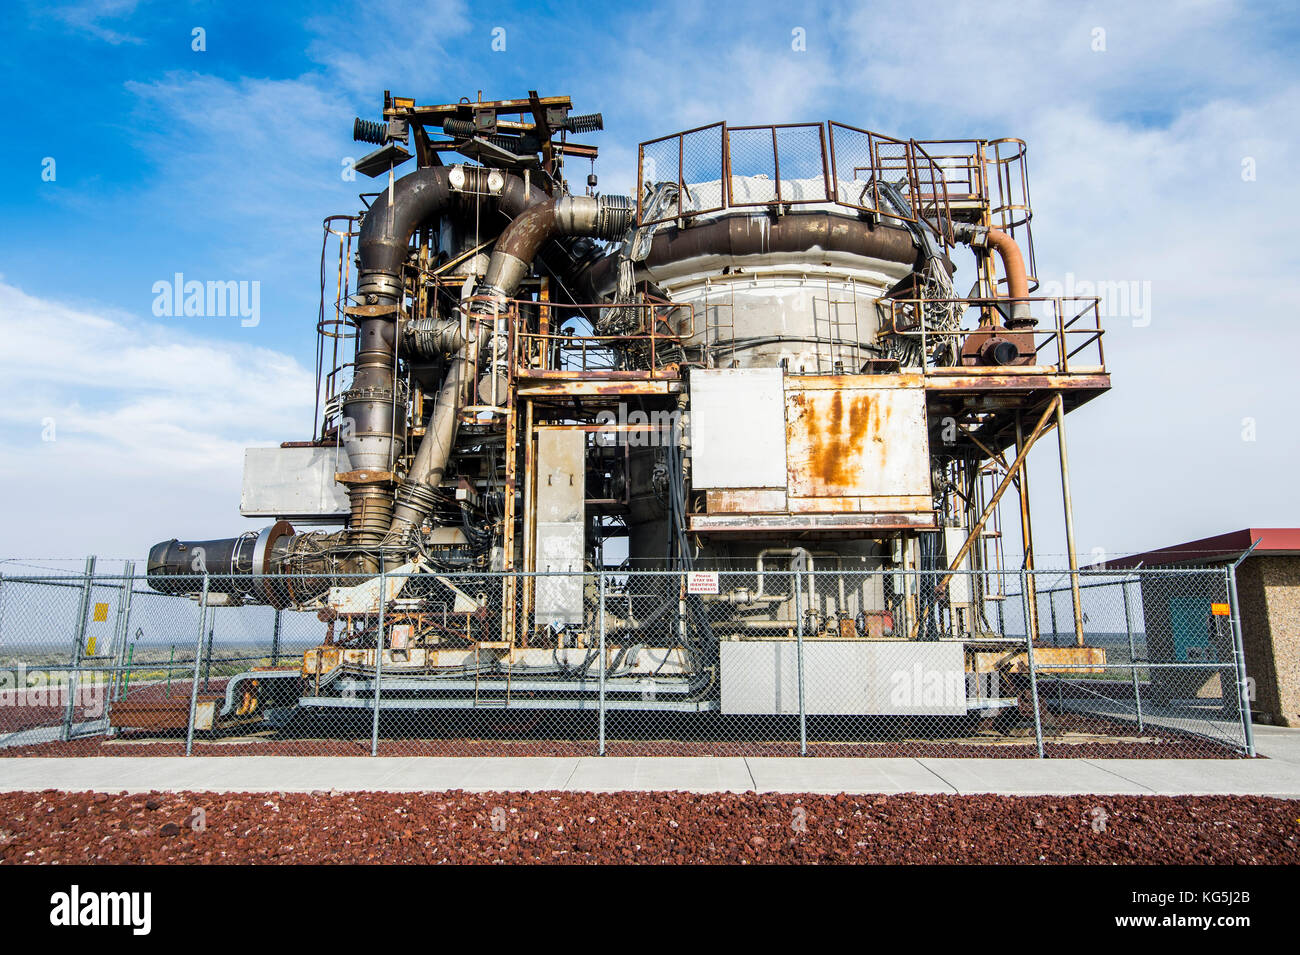 Experimental Breeder Reactor I (EBR-I) the world's first electricity-generating nuclear power plant, Arco, Idaho, - Stock Image